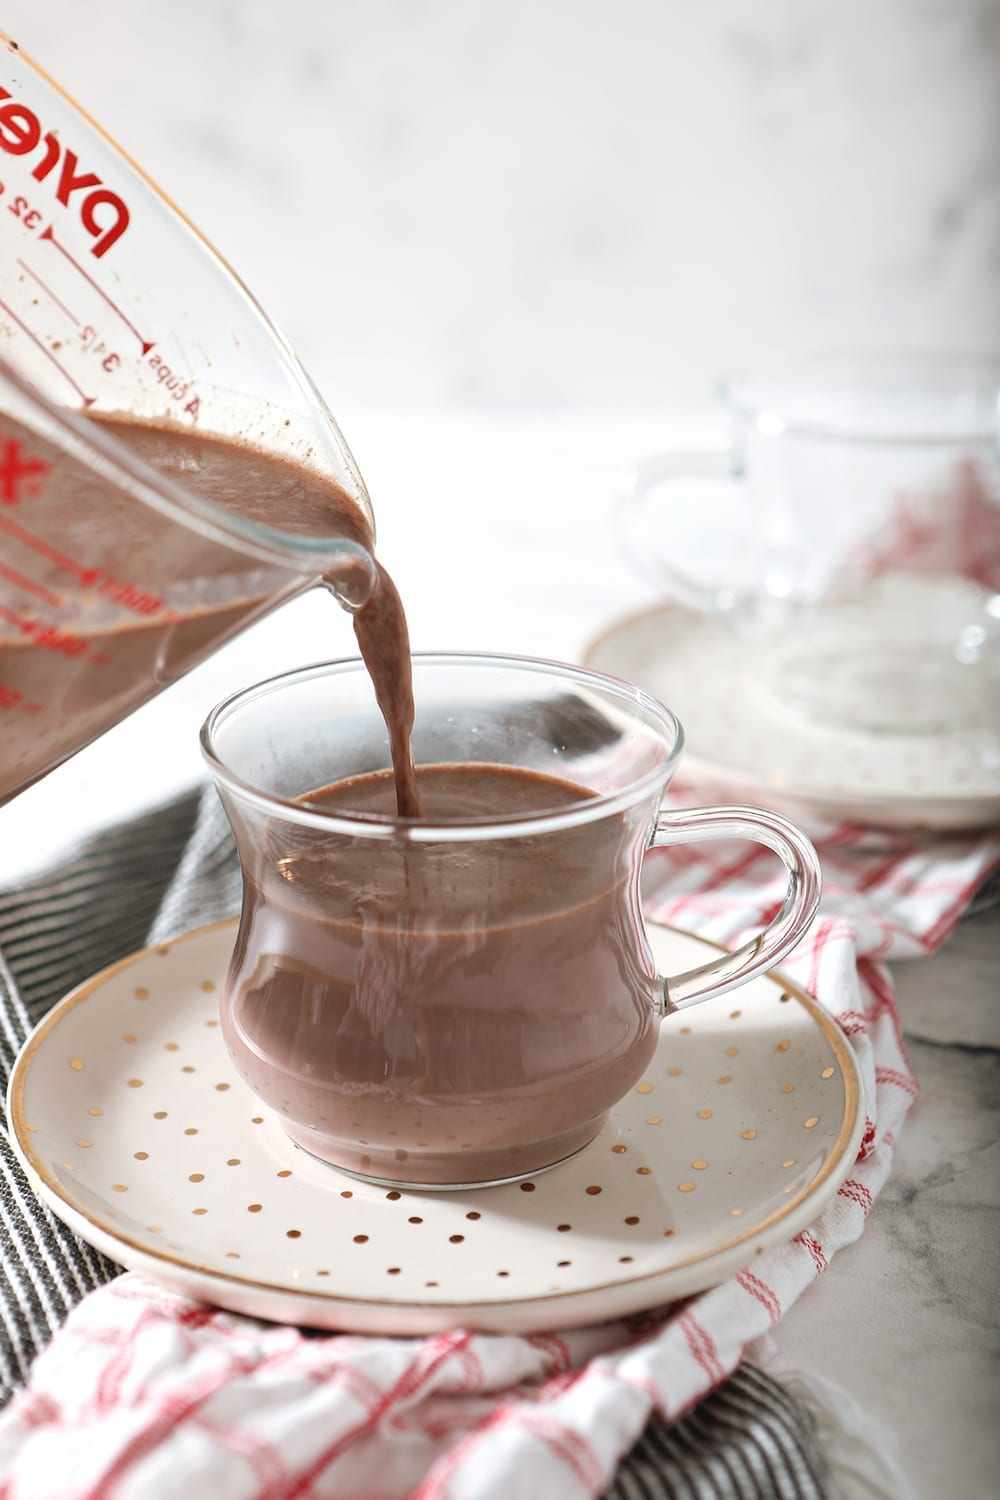 Gourmet Hot Chocolate is poured into a clear mug on a golden polka dot plate